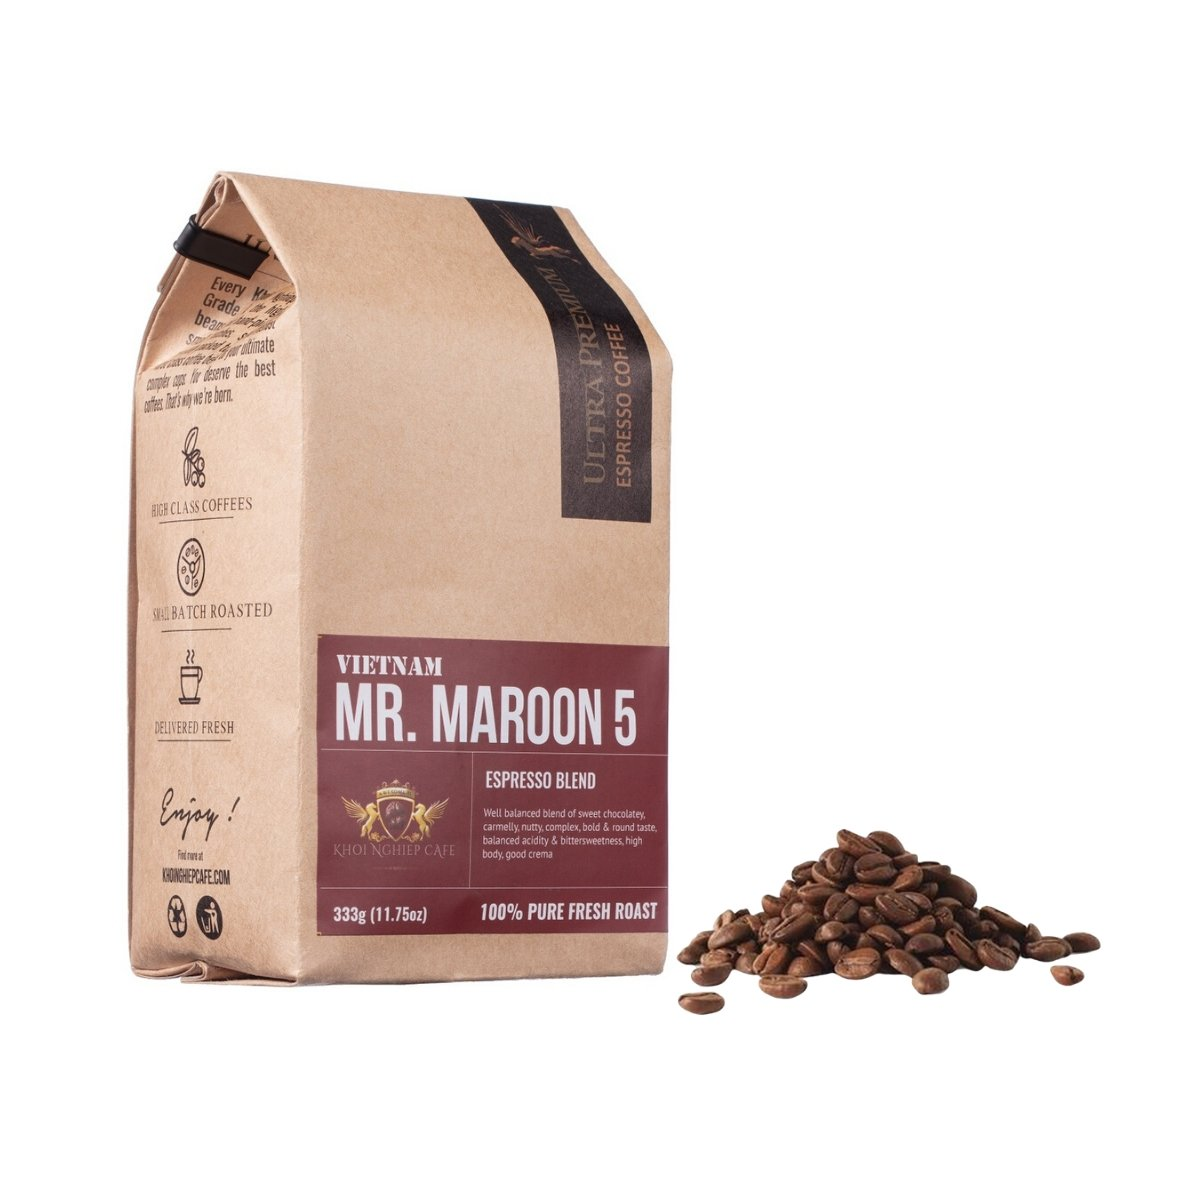 khoi nghiep cafe mr maroon 5 cafe hat ngon chuan y pha may espresso vietnam hcm